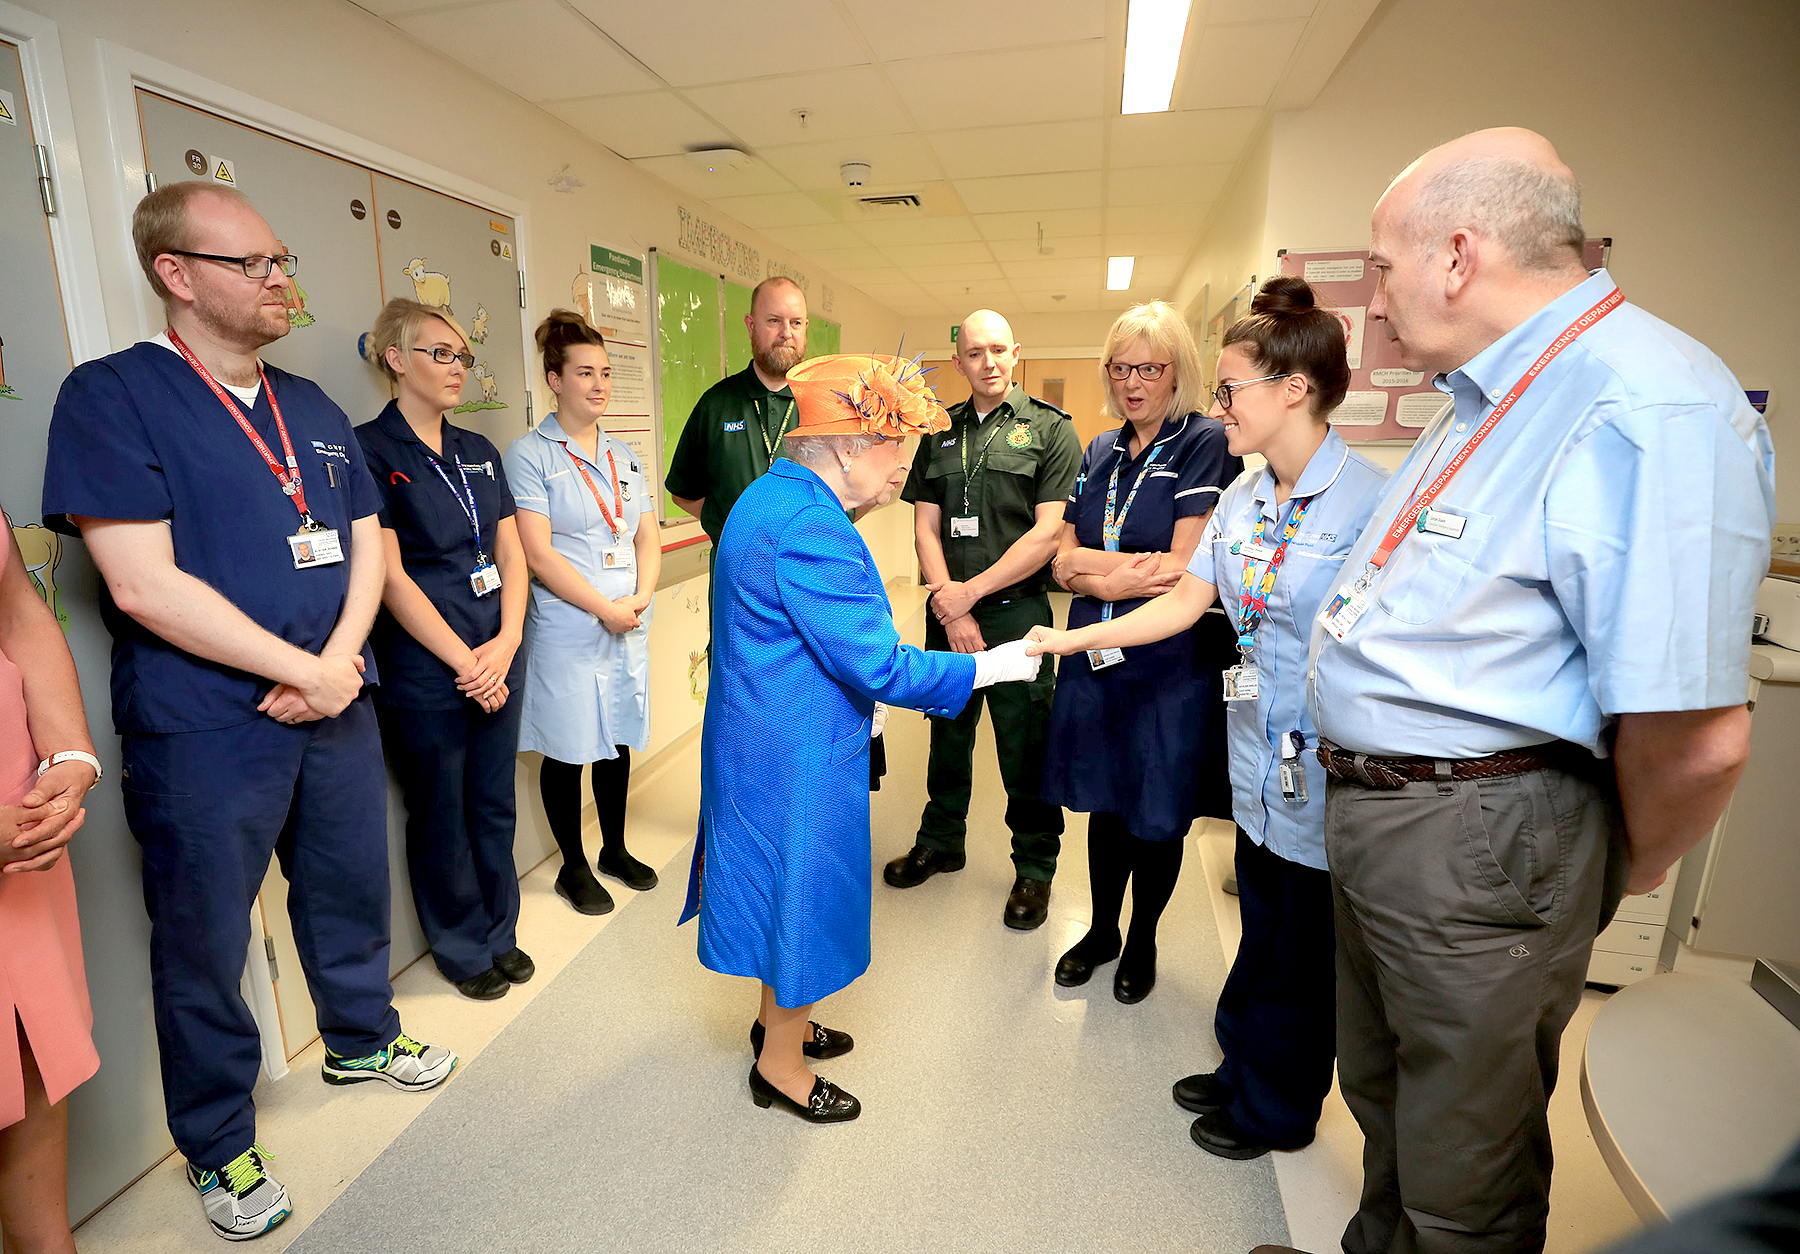 Queen Elizabeth II shakes hands with a nurse during a visit to the Royal Manchester Children's Hospital on May 25, 2017 in Manchester, England.